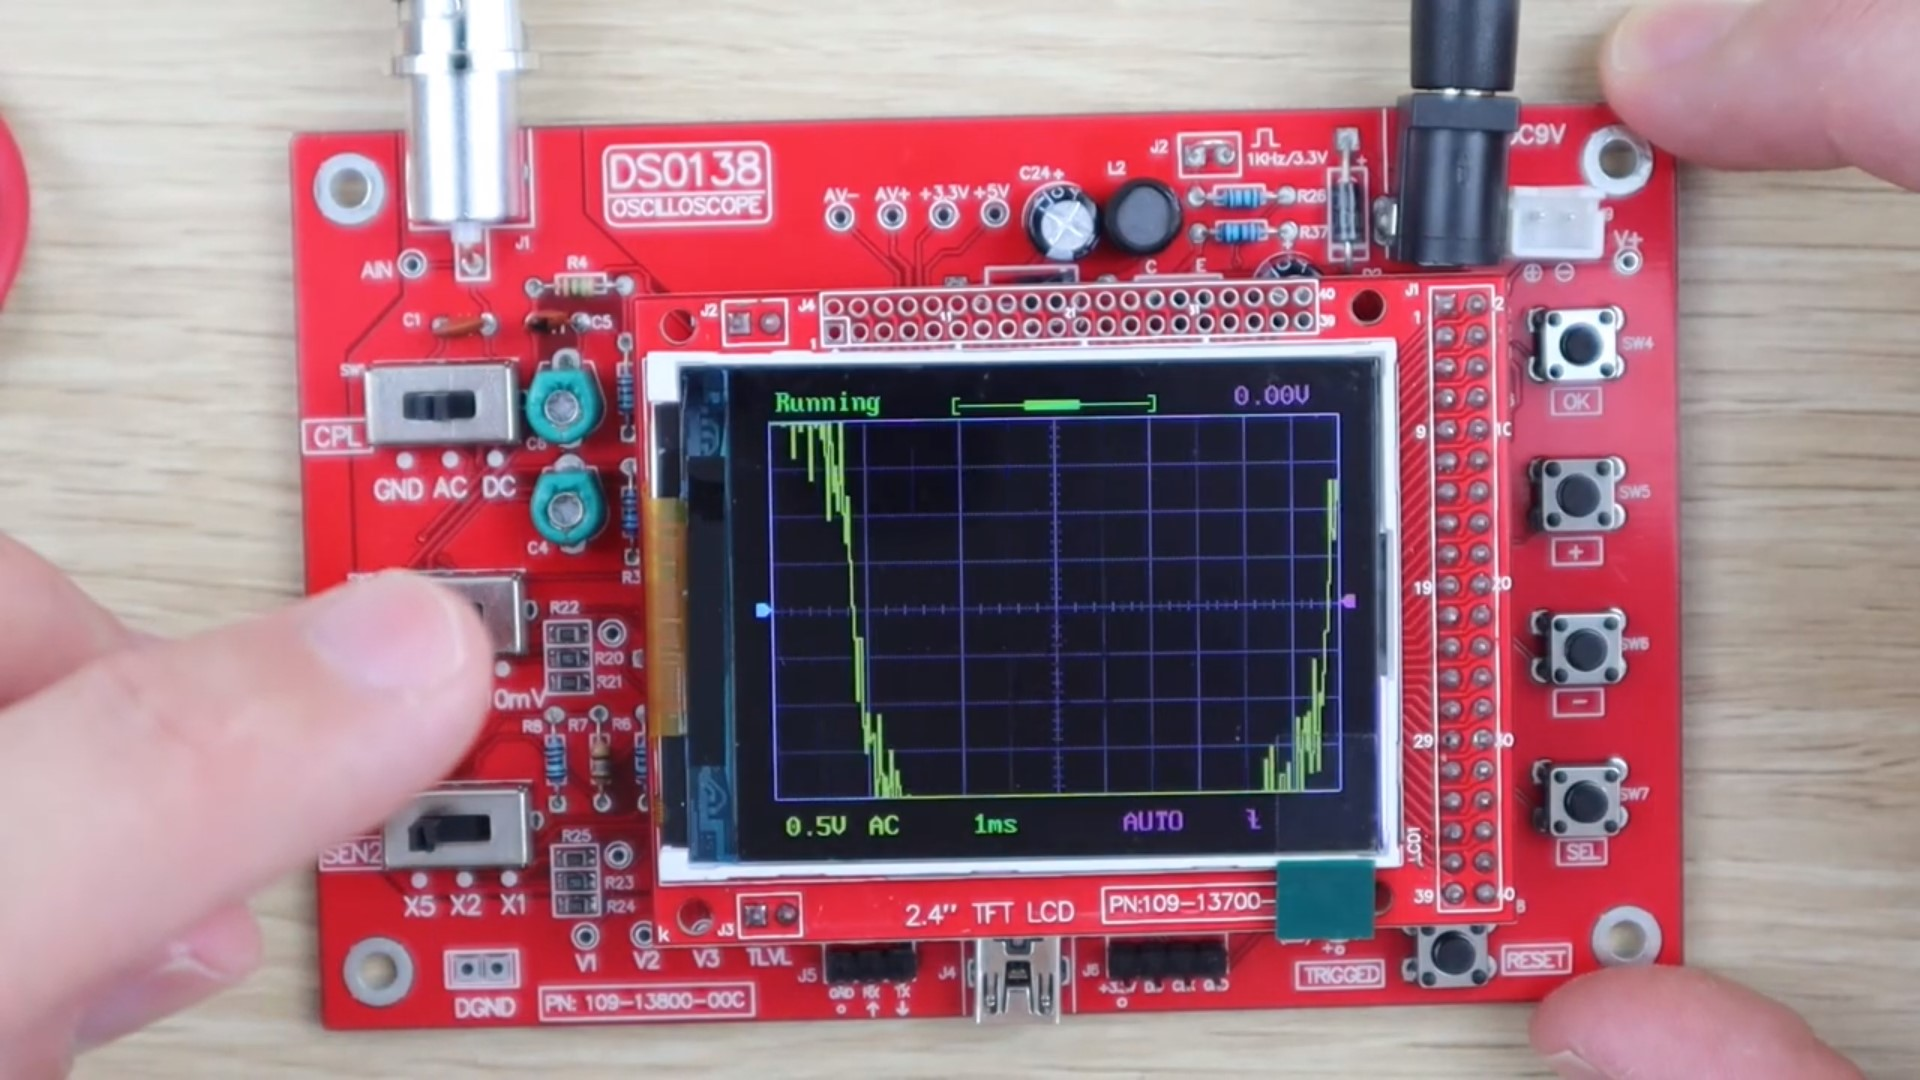 Oscilloscope Trace When Touching Test Lead